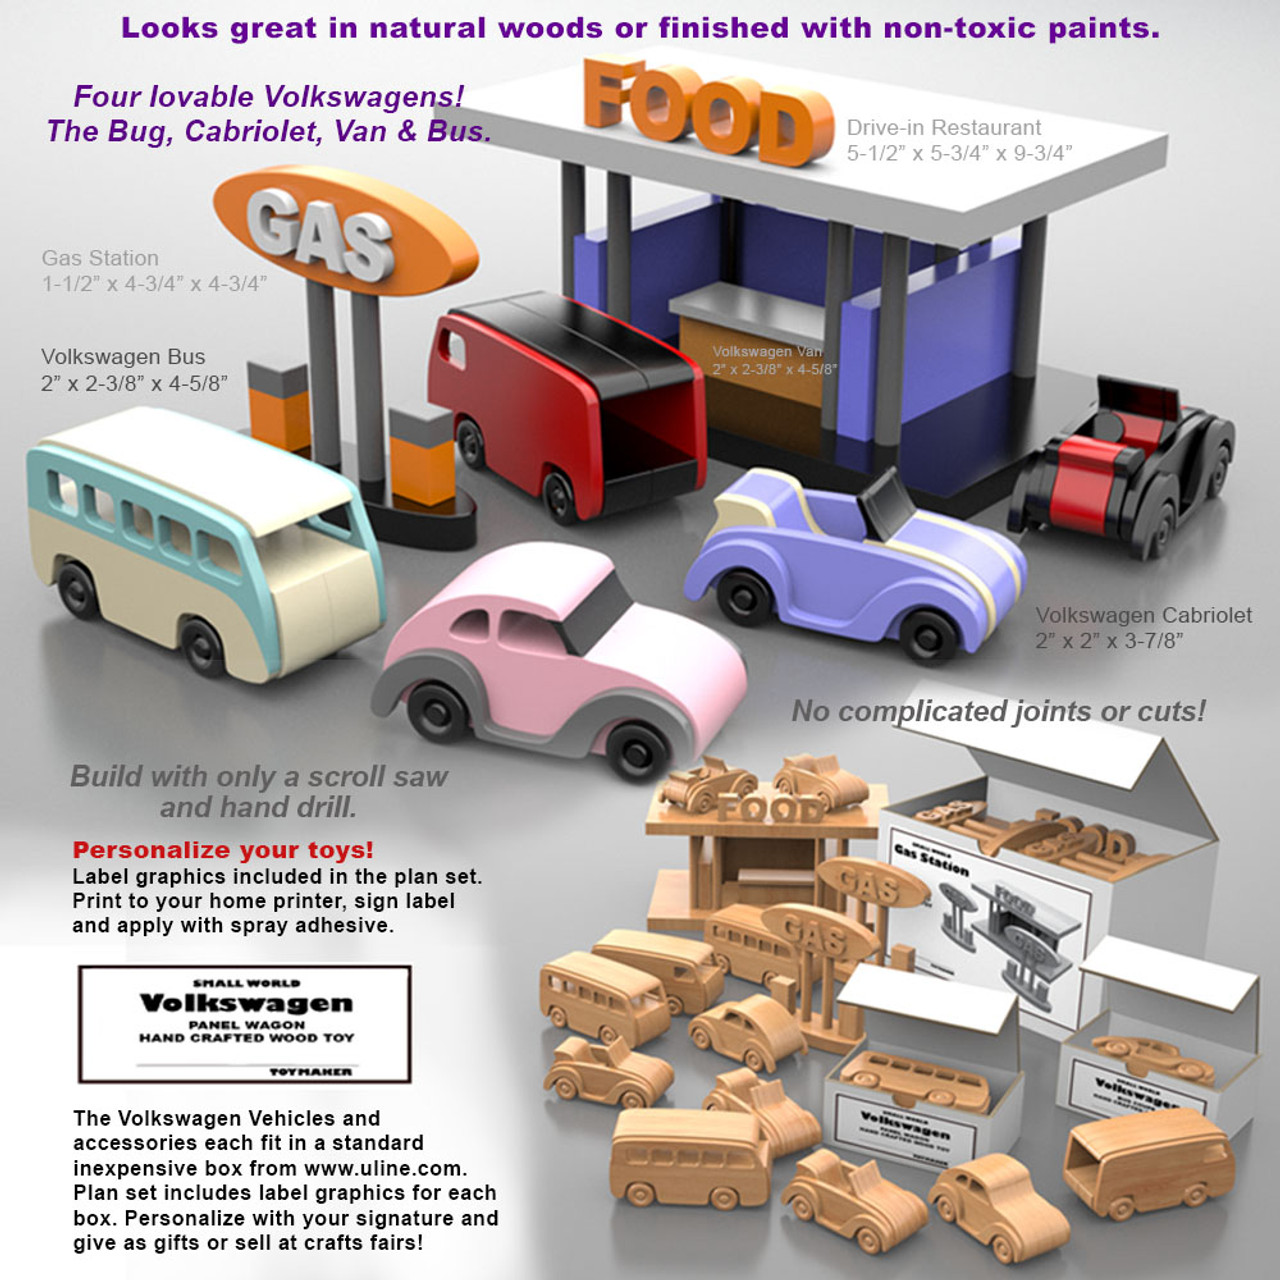 small world volkswagens + food & gas stop wood toy plans (pdf download)